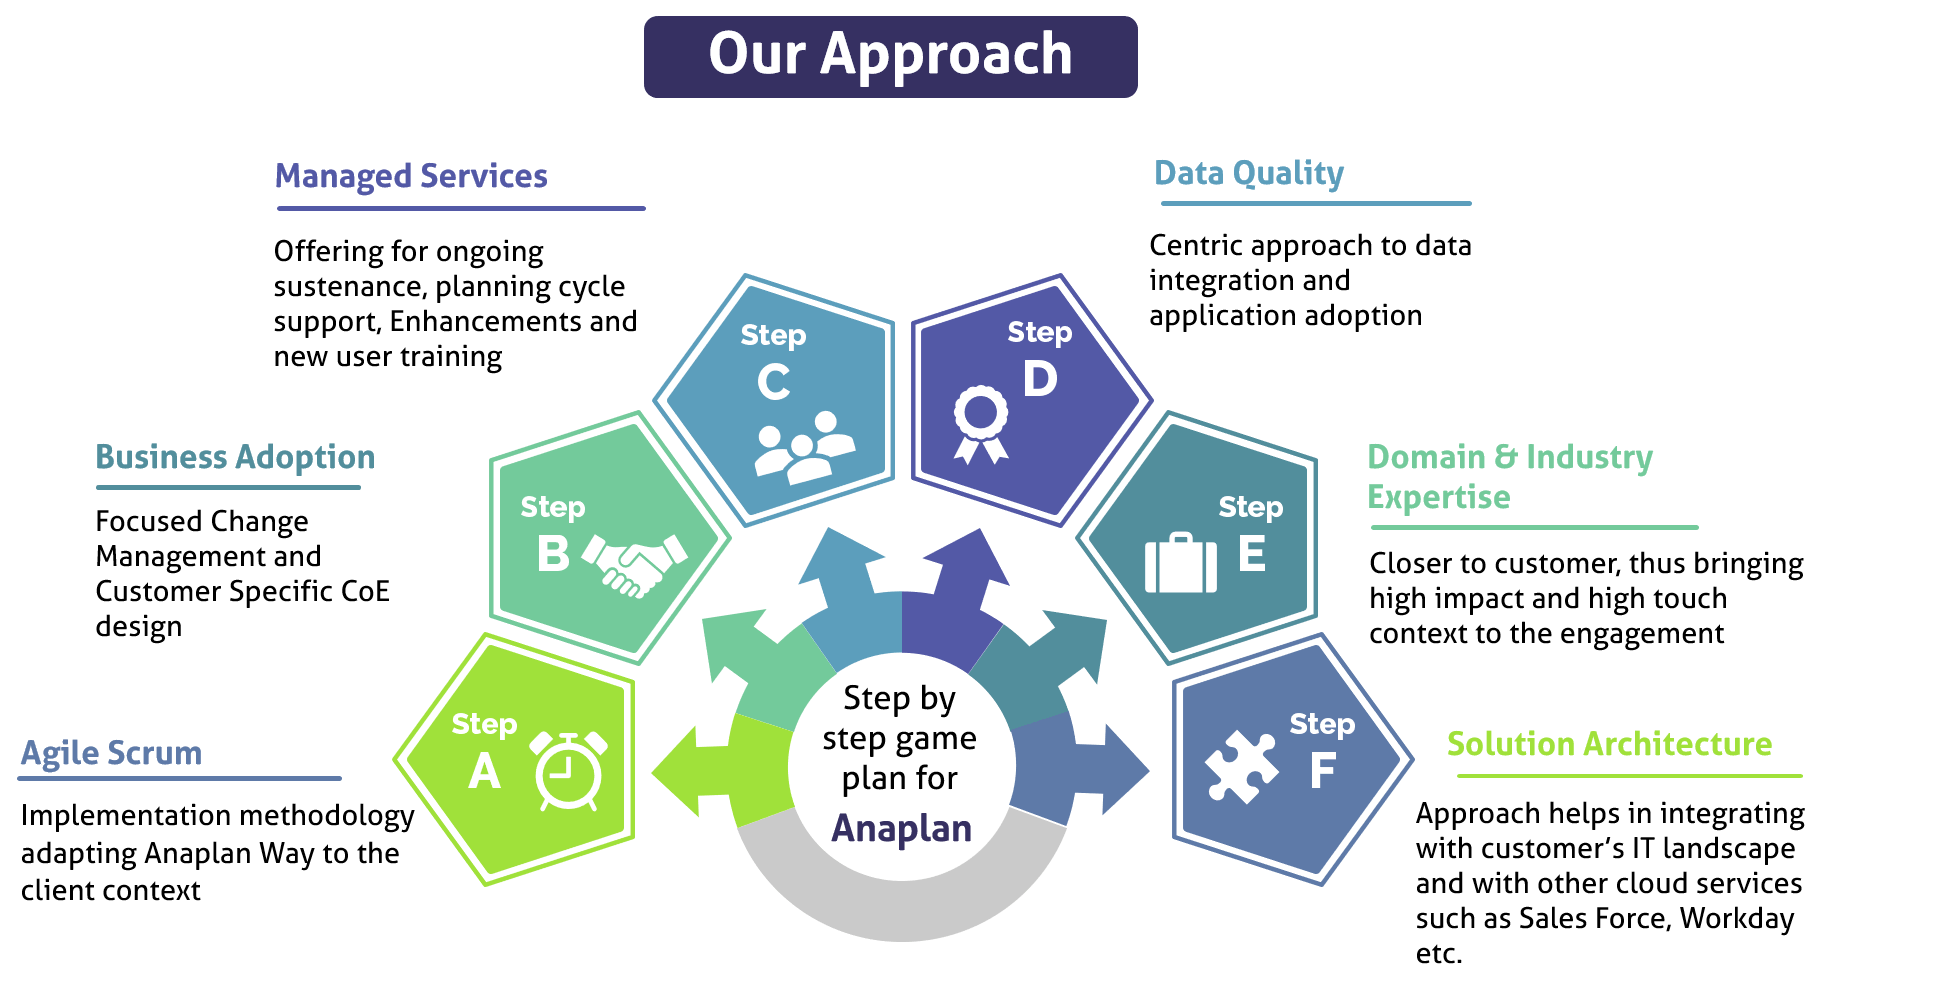 Anaplan_Approach